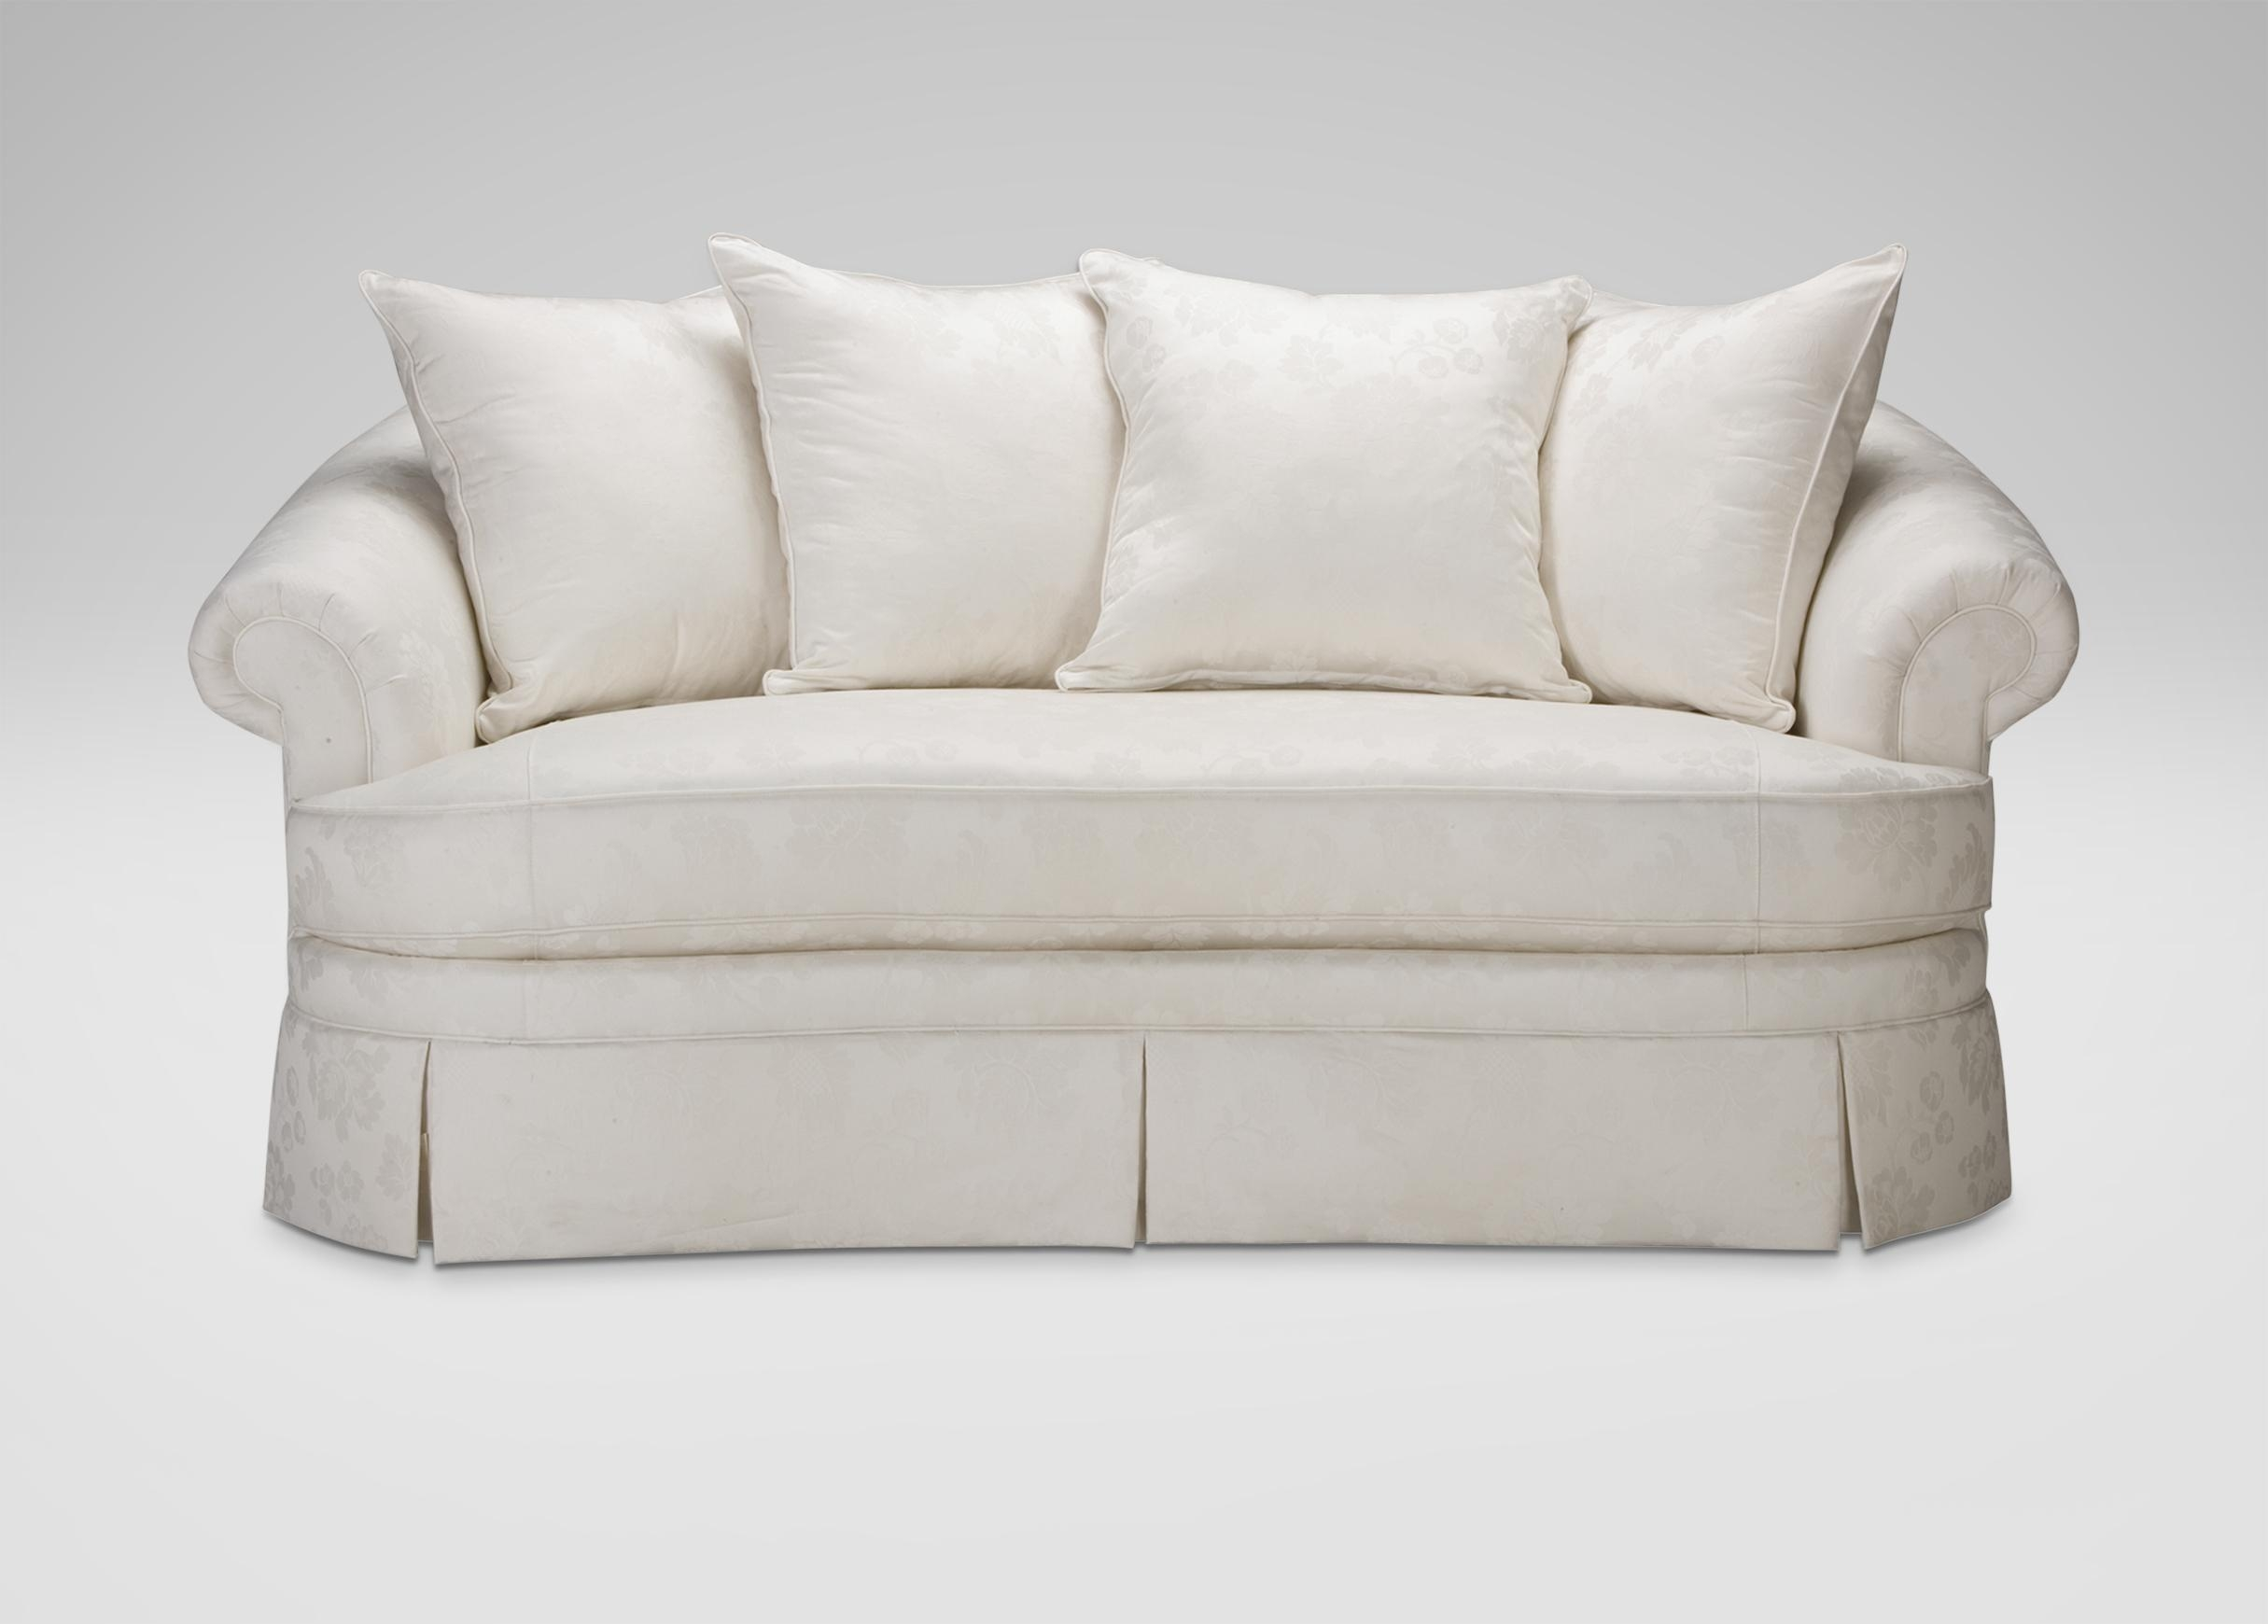 Paris Bench Cushion Sofa | Sofas & Loveseats With Bench Cushion Sofas (Image 15 of 20)